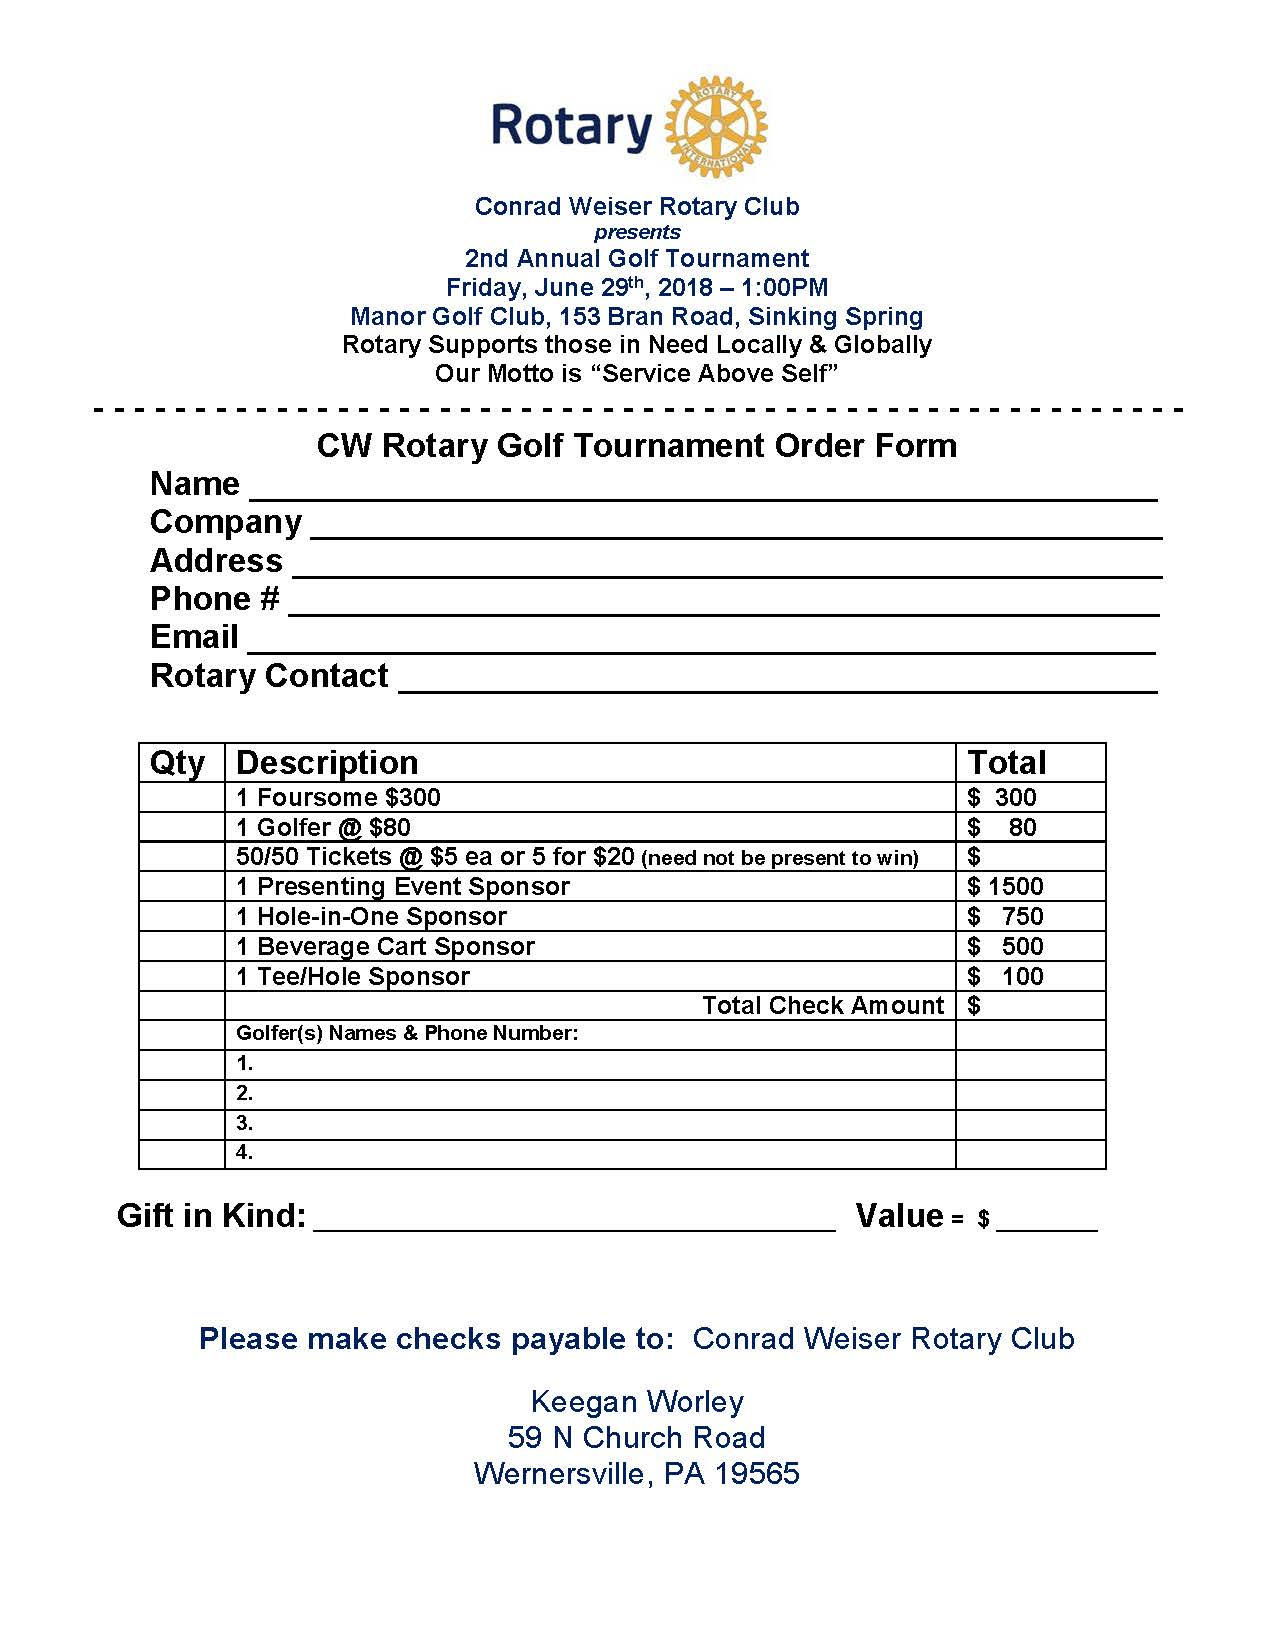 2nd Annual Golf Tournament @ Manor Golf Club - Friday